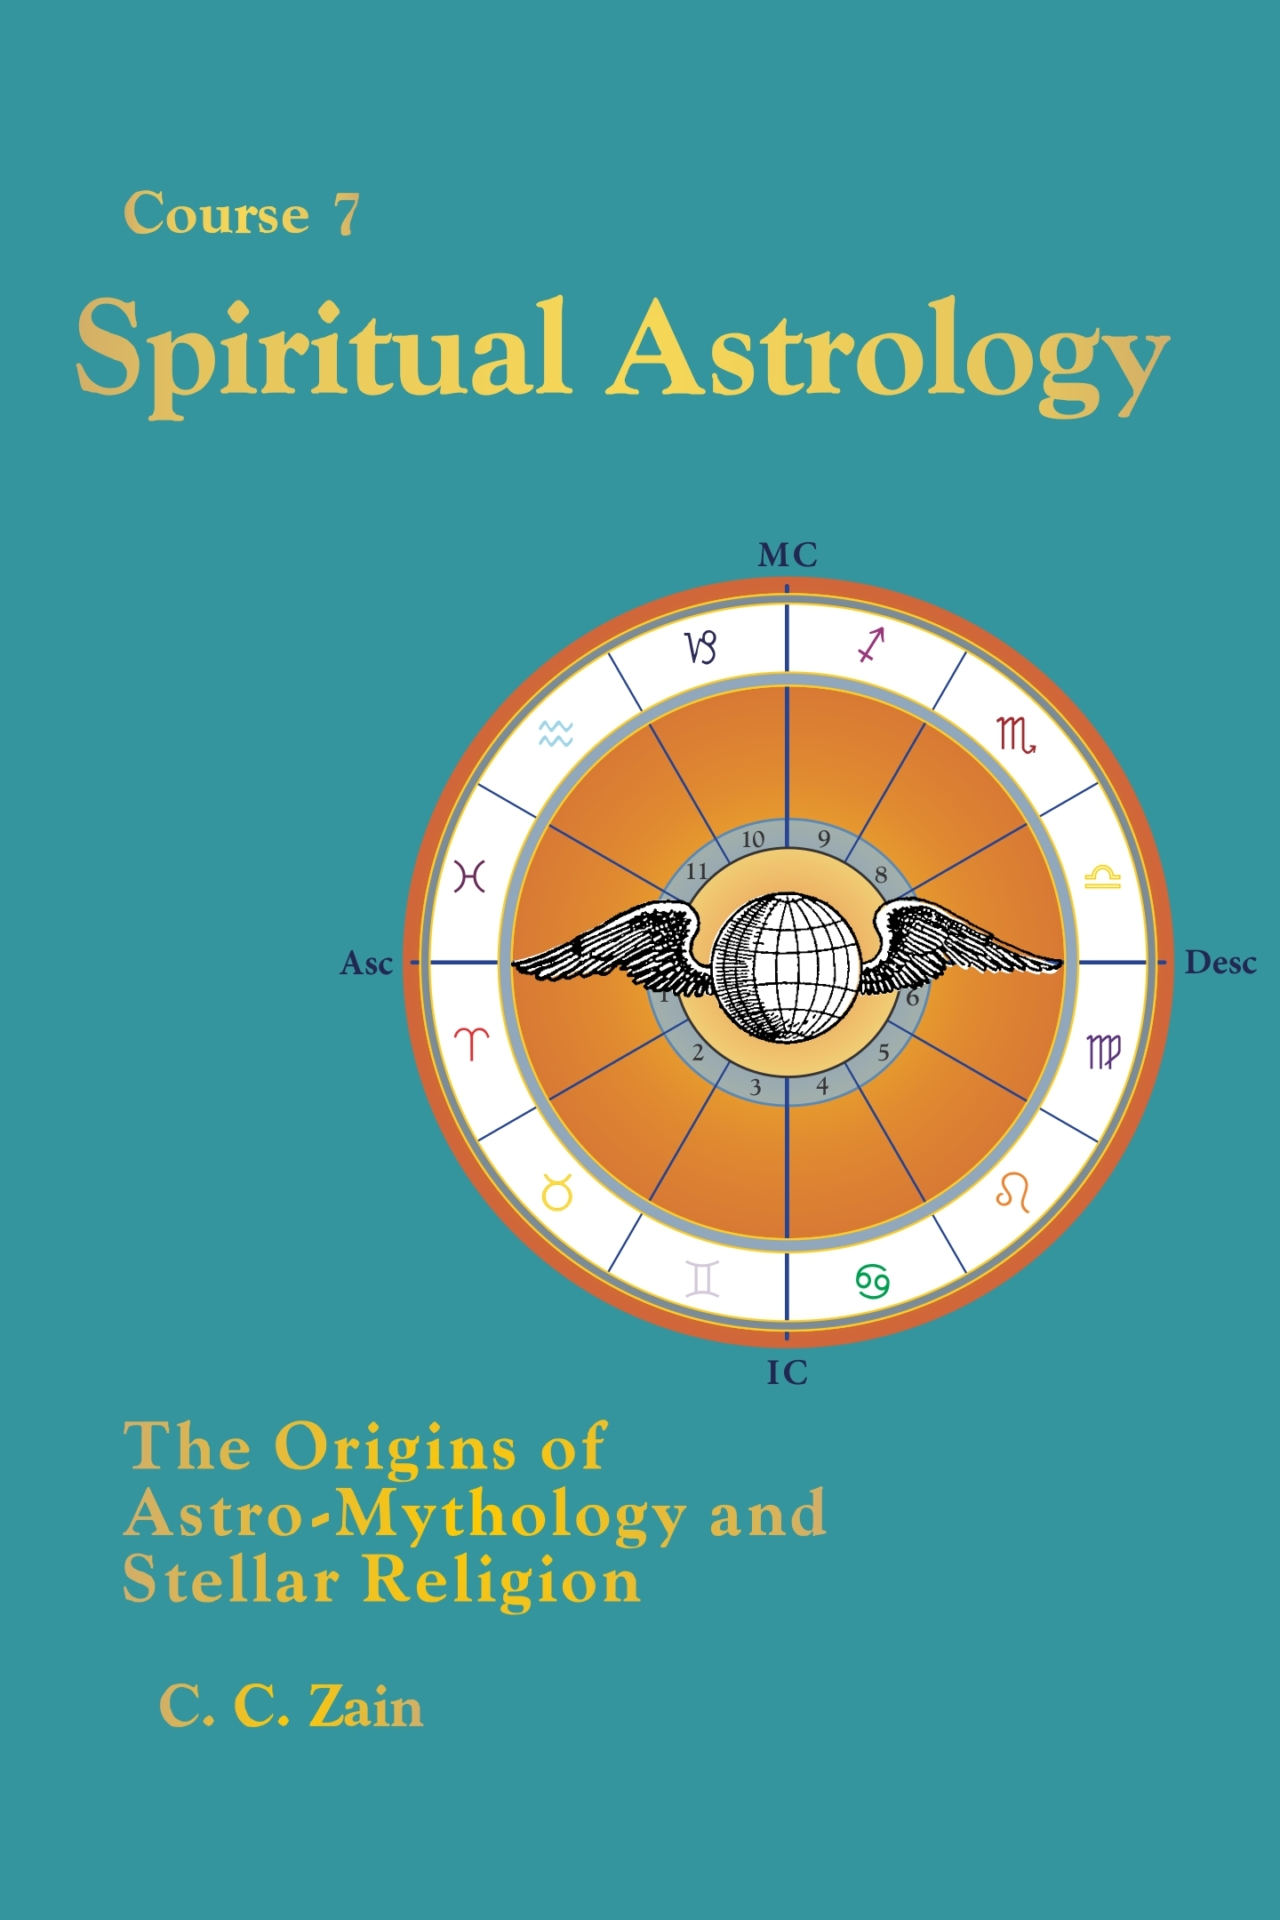 https://study.academyofhermeticarts.org/wp-content/uploads/2020/04/07_Spiritual_Astrology_eBook_Cover-1280x1920.jpg